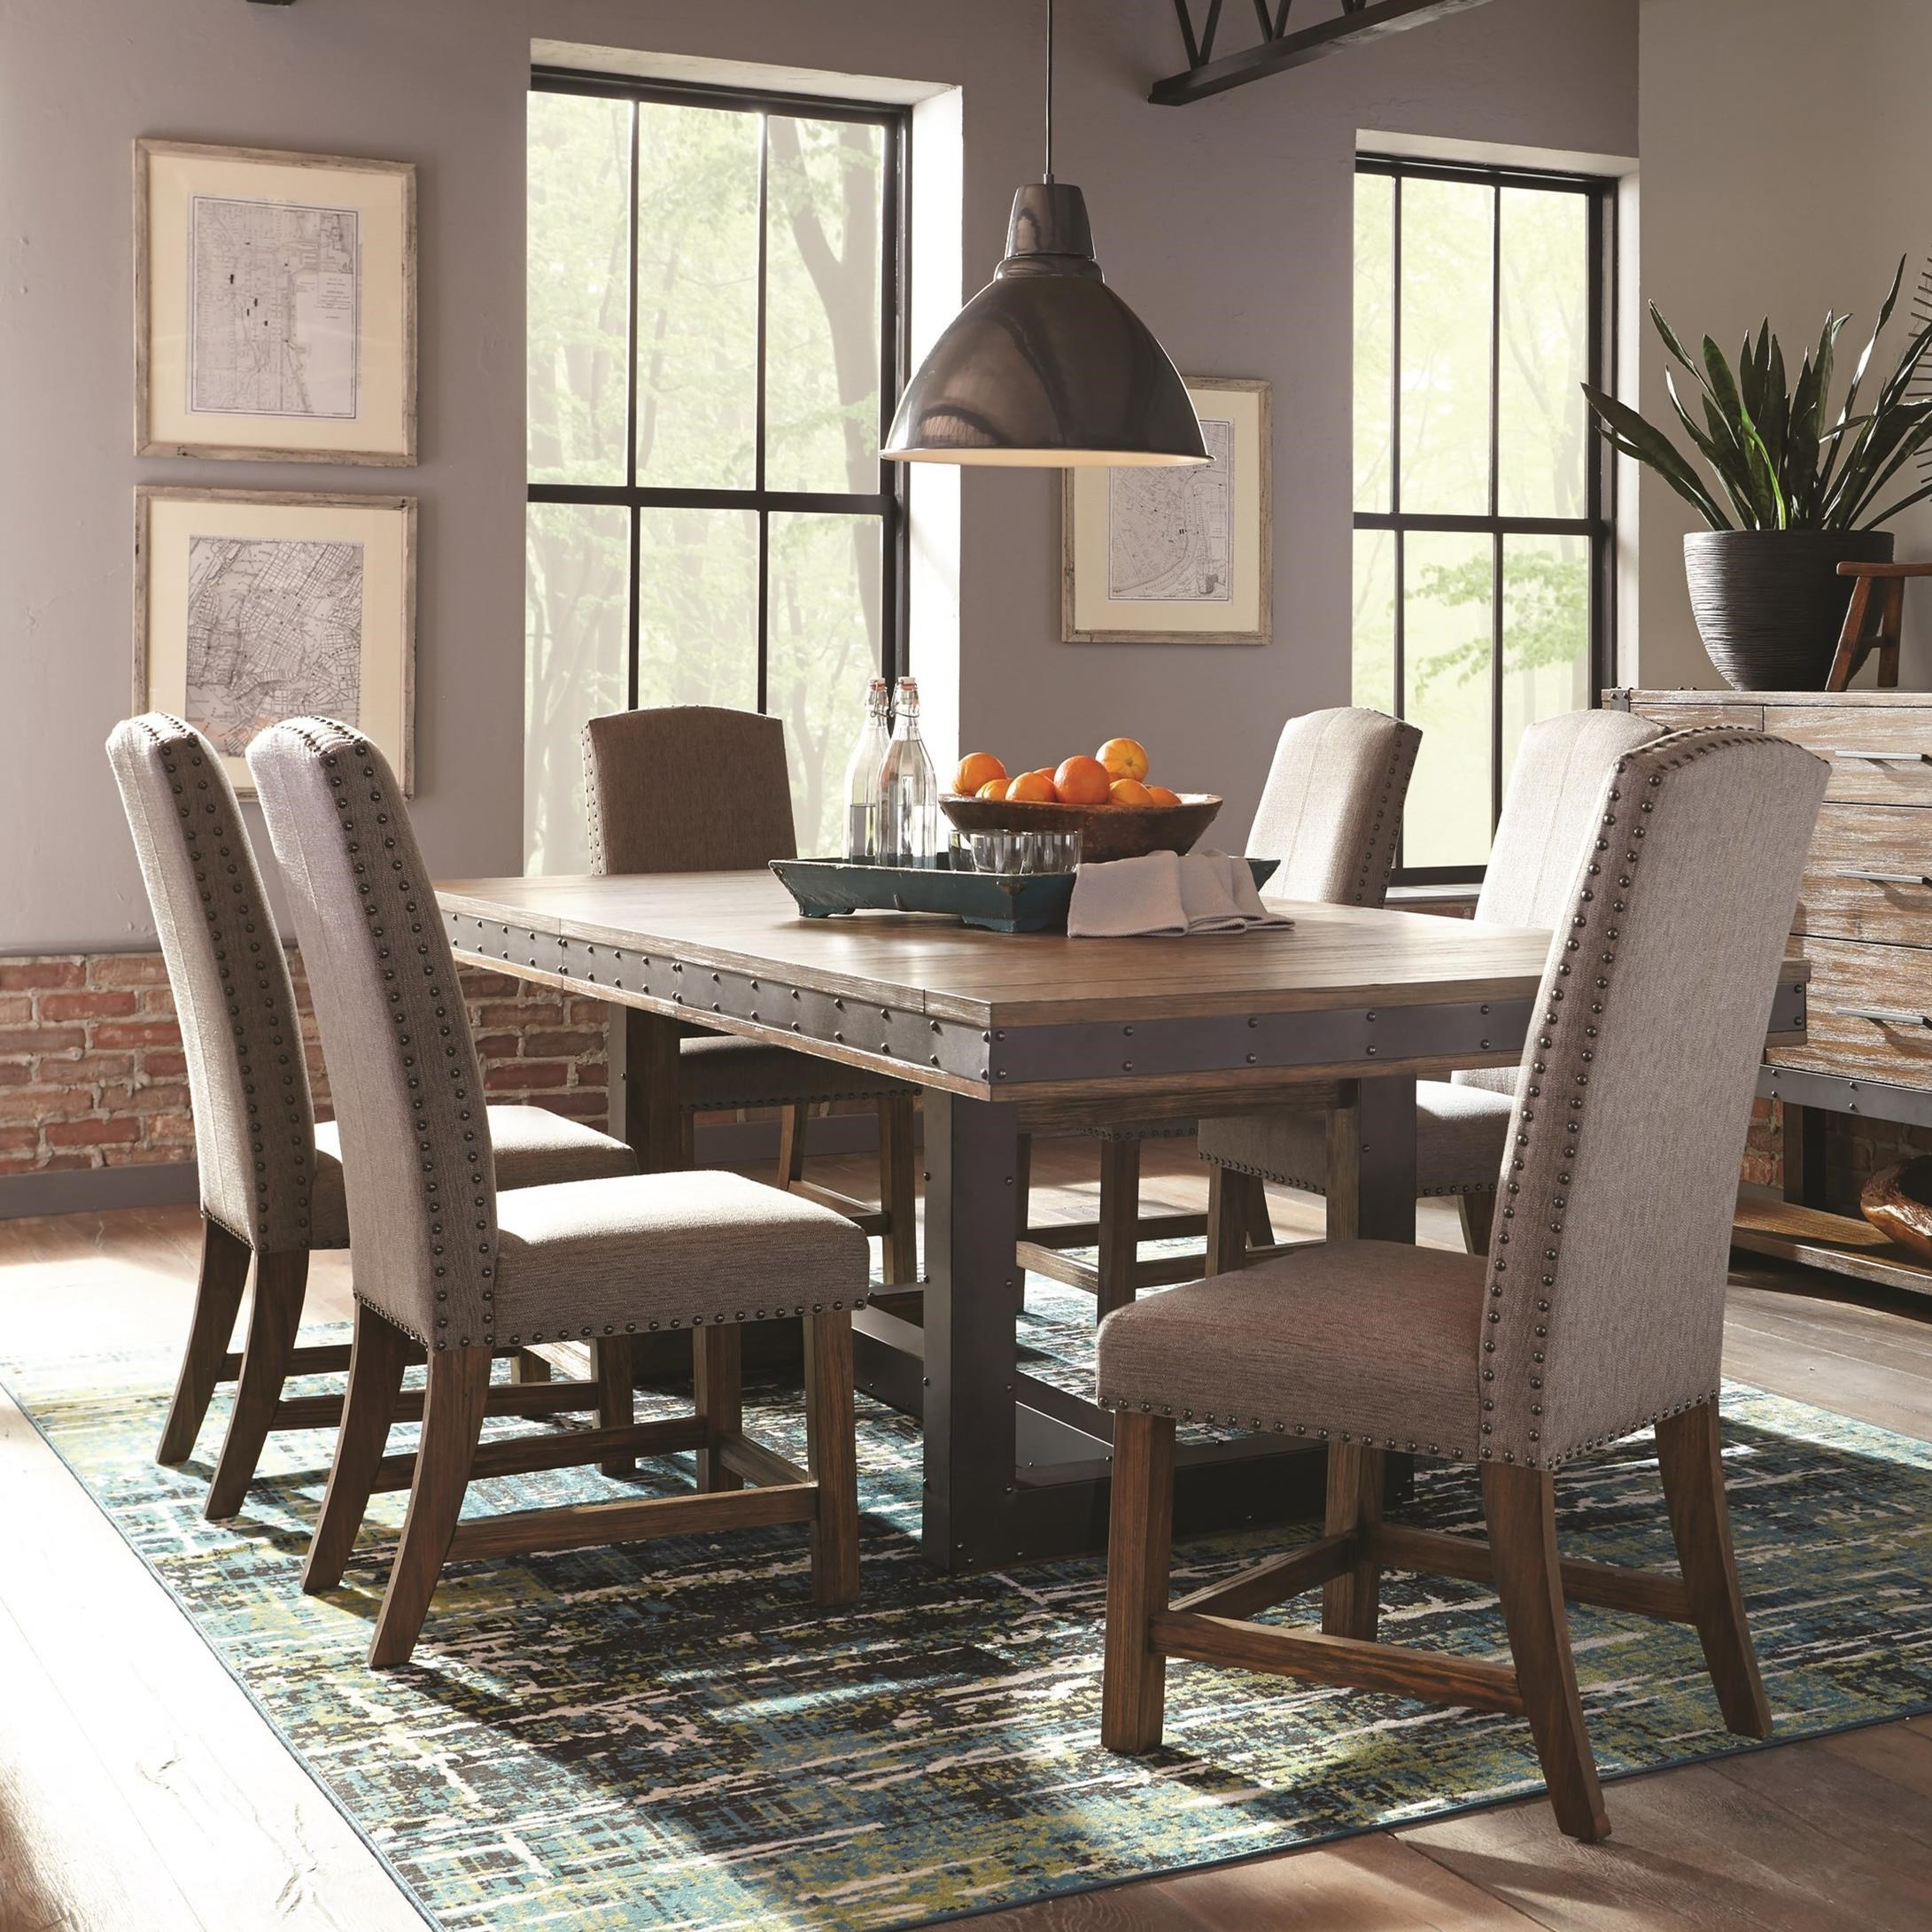 Dining Room Sets Dallas Tx: Coaster Atwater 7pc Dining Table Set Dallas TX